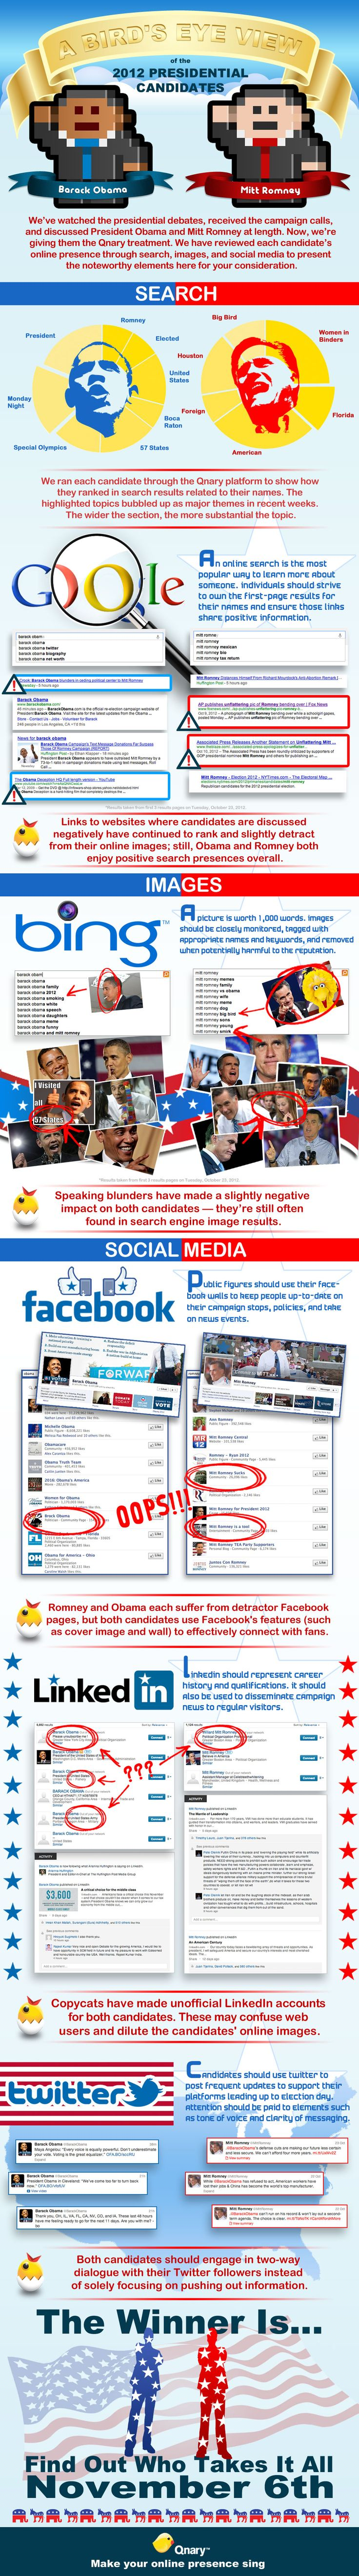 2012 Presidential Candidate Digital Footprints Infographic